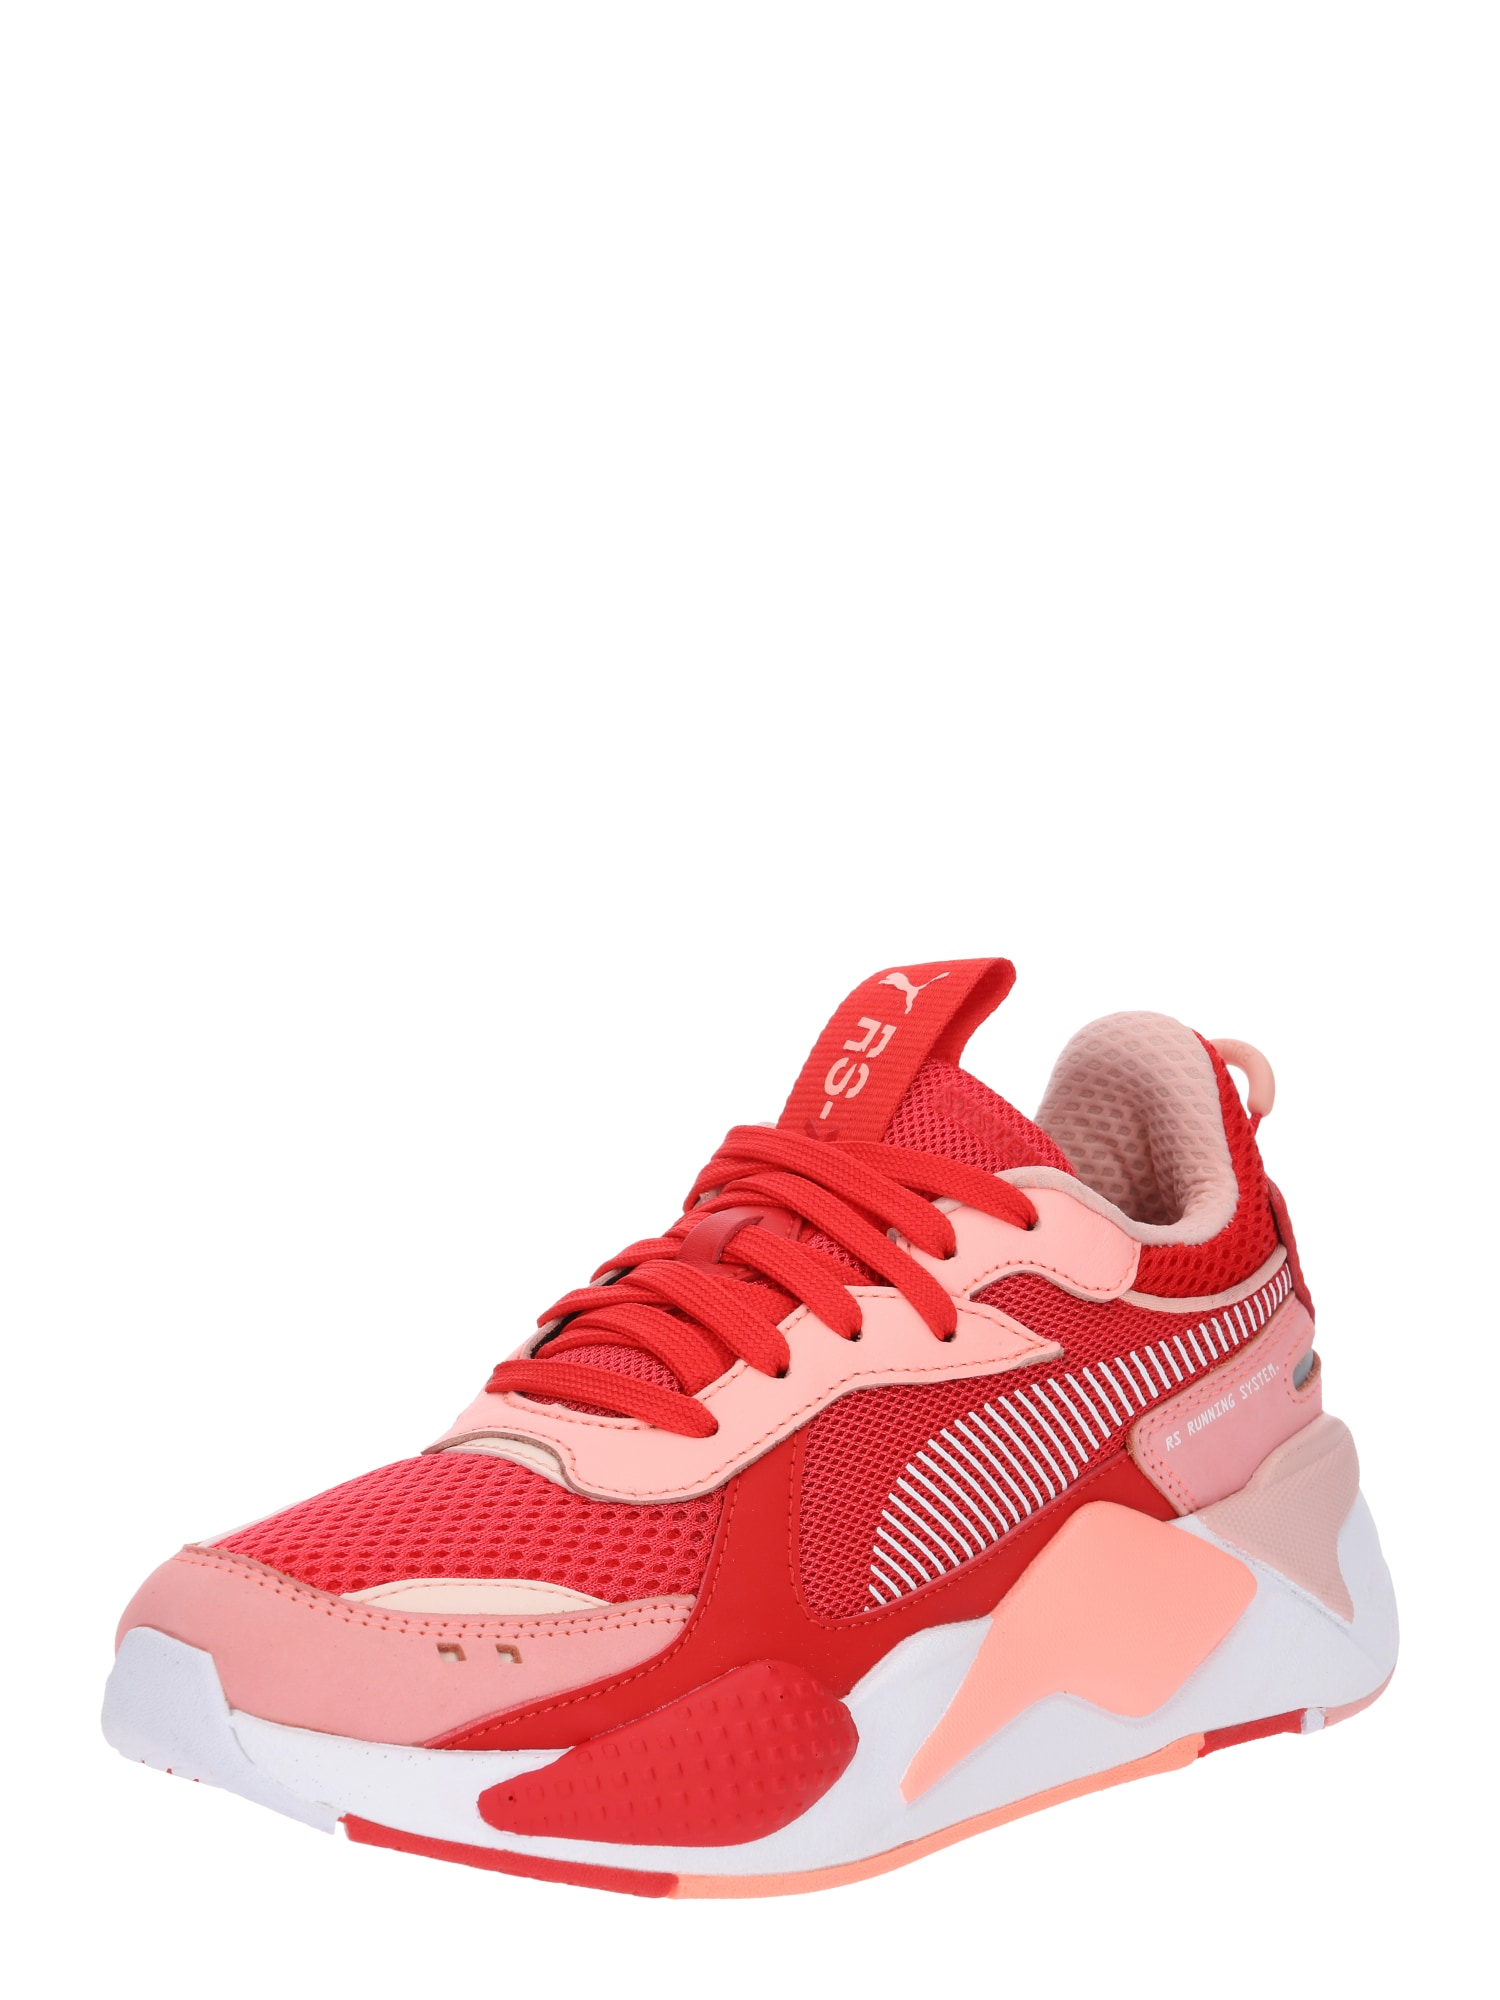 PUMA, Dames Sneakers laag 'RS-X TOYS', perzik / rood